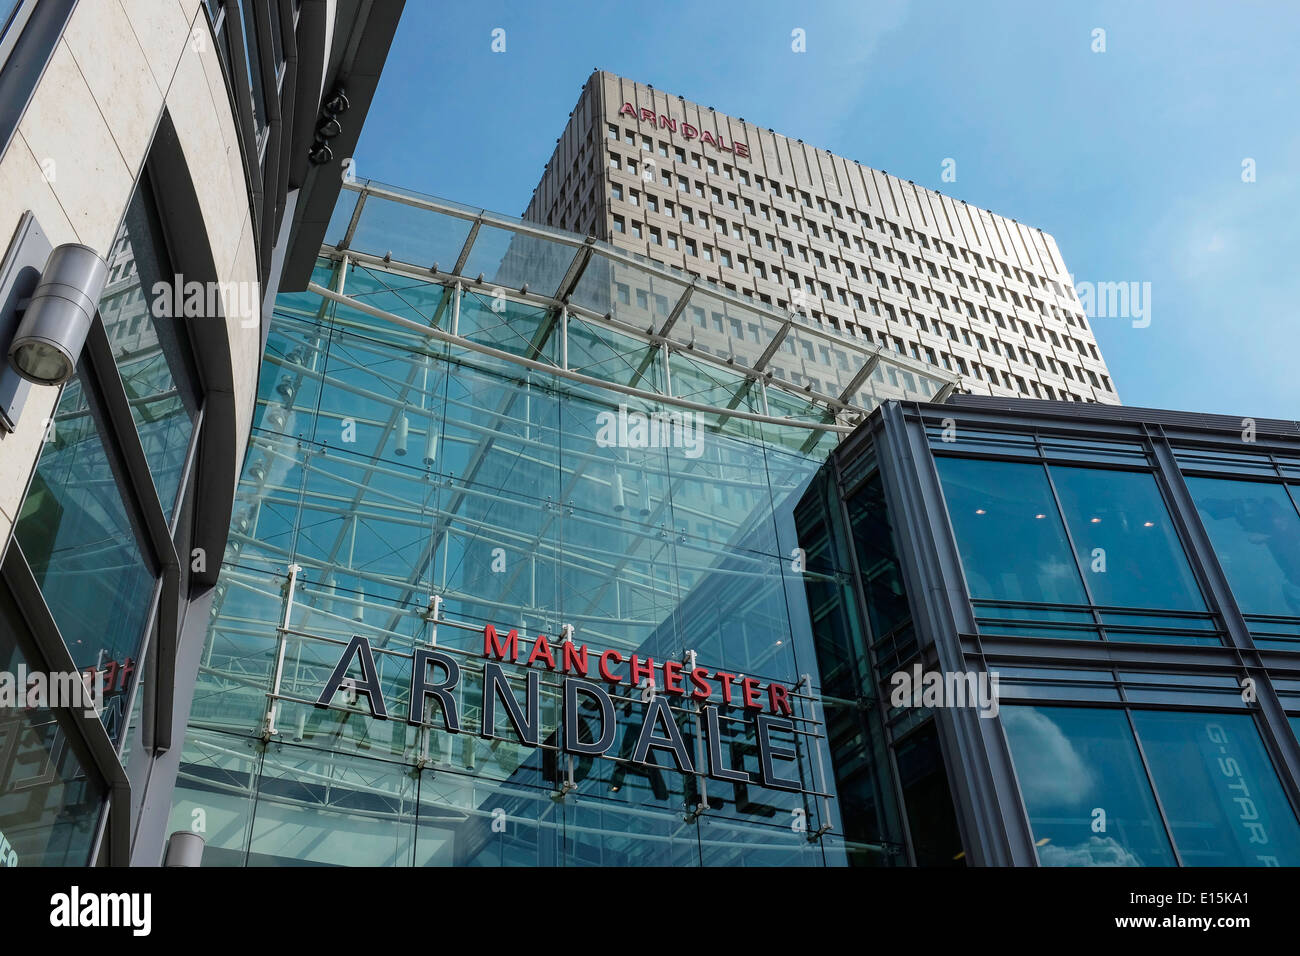 The Manchester Arndale shopping centre and tower block UK - Stock Image